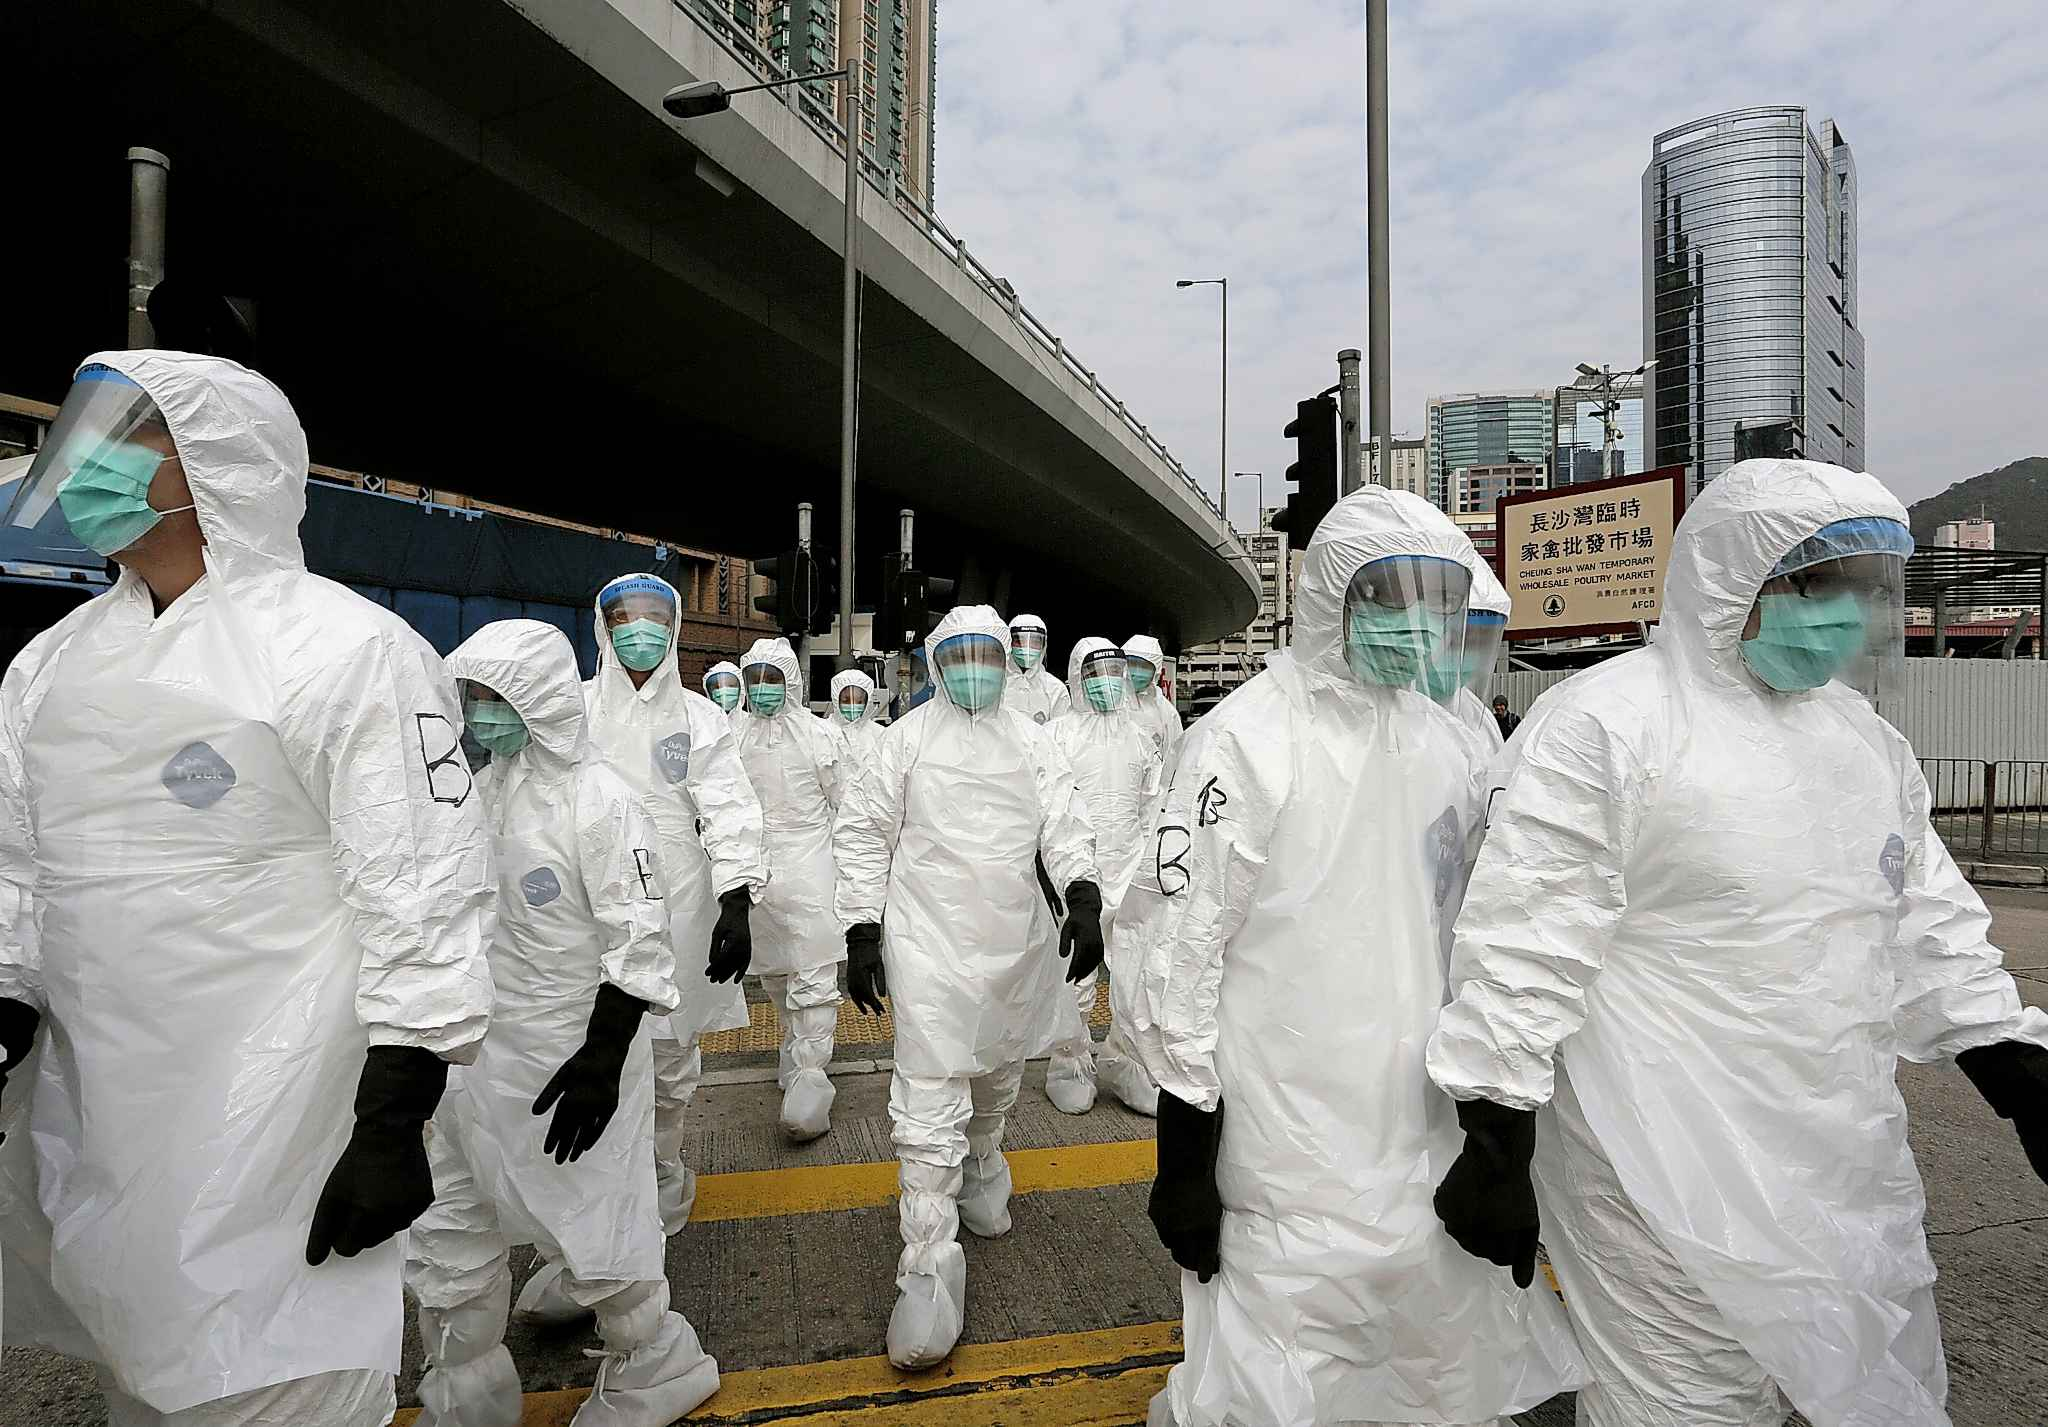 Health workers in full protective gear walk at a wholesale poultry market before culling the poultry in Hong Kong in 2014. Hong Kong authorities culled 20,000 birds at a wholesale market after poultry from southern mainland China tested positive for the H7N9 virus.